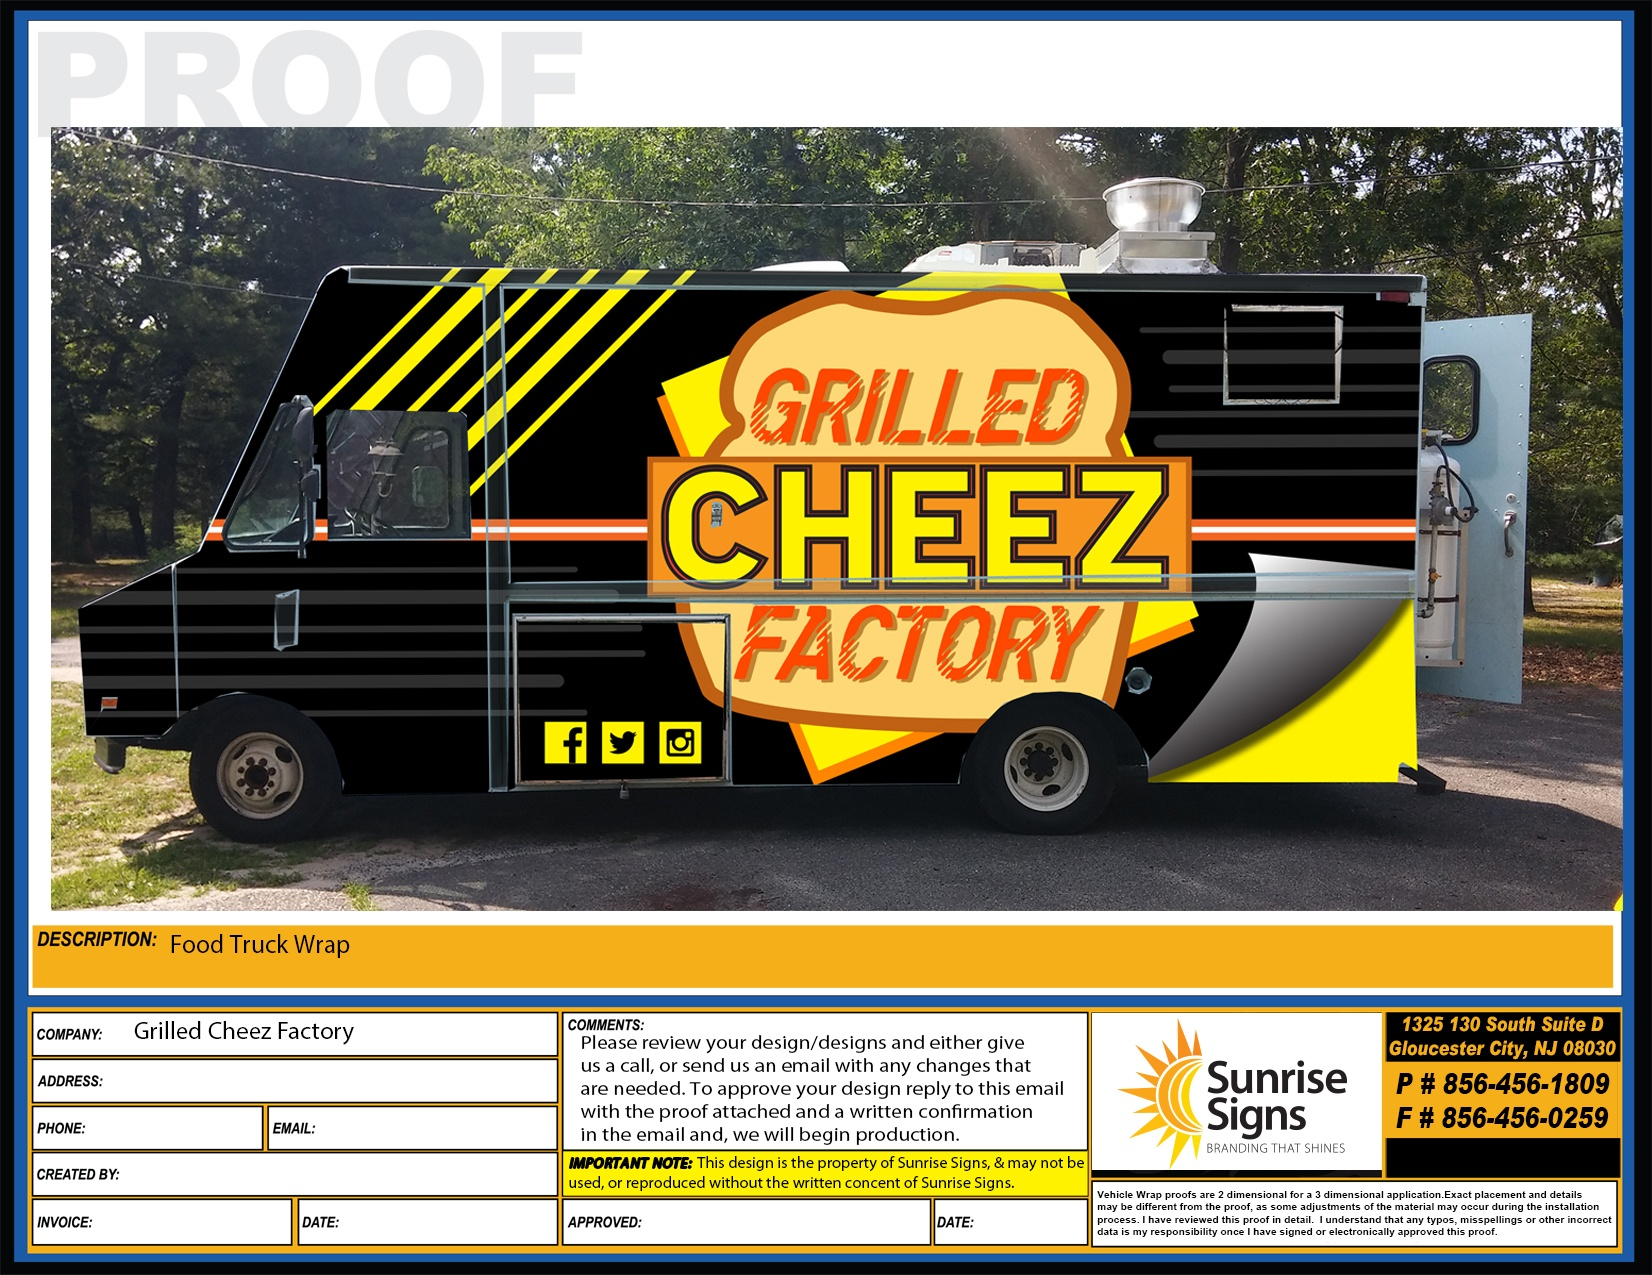 Grilled Cheez Factory_Driver Proof.jpg